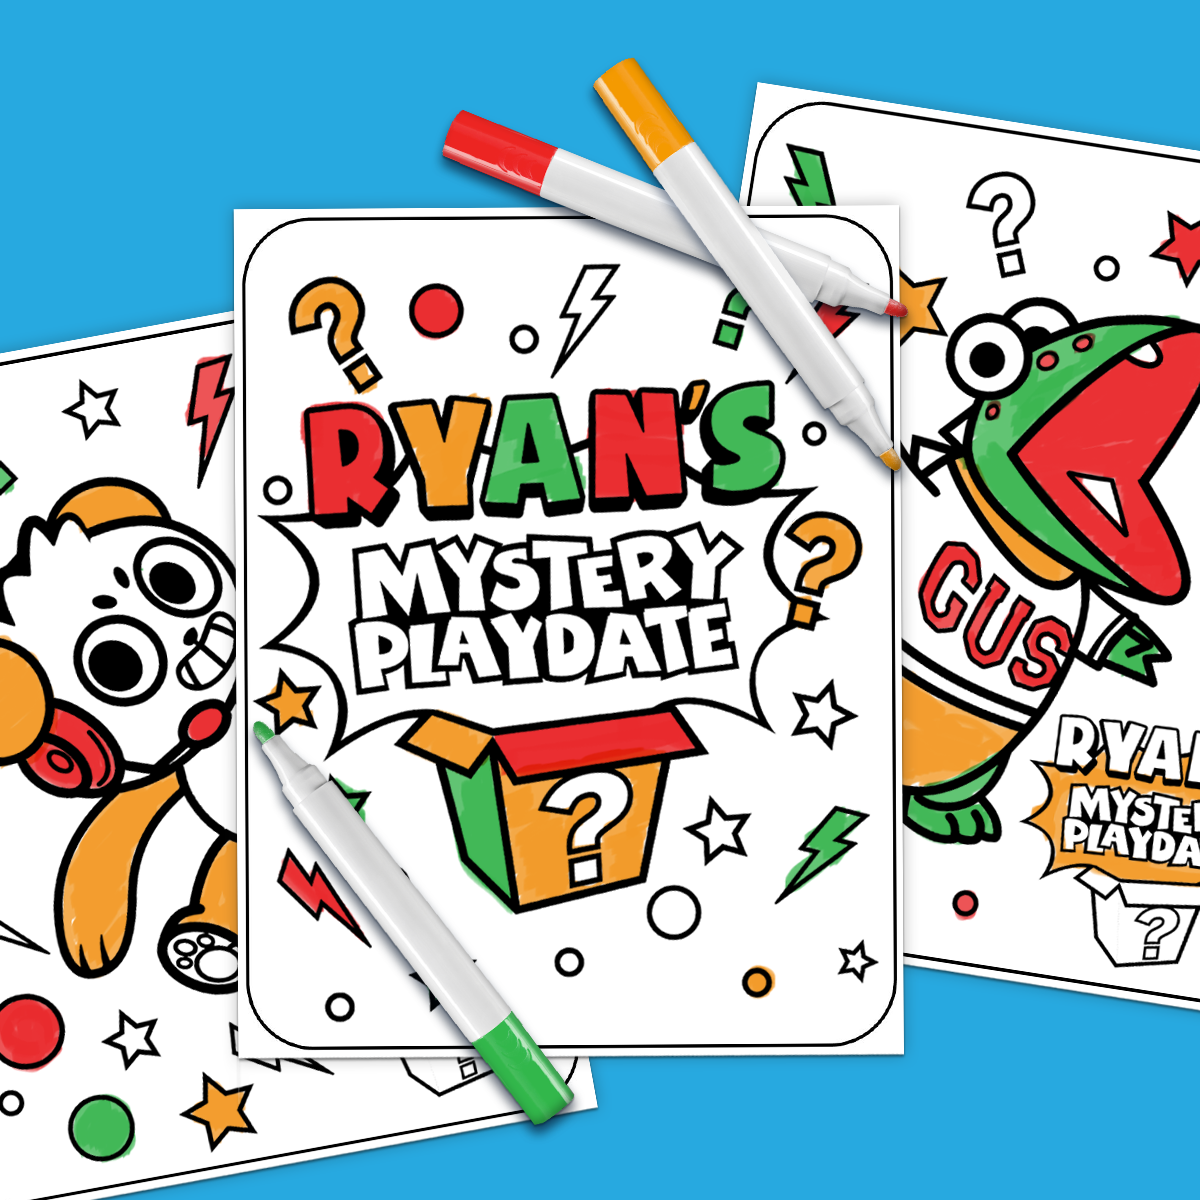 Ryans mystery playdate 3 marker challenge nickelodeon parents